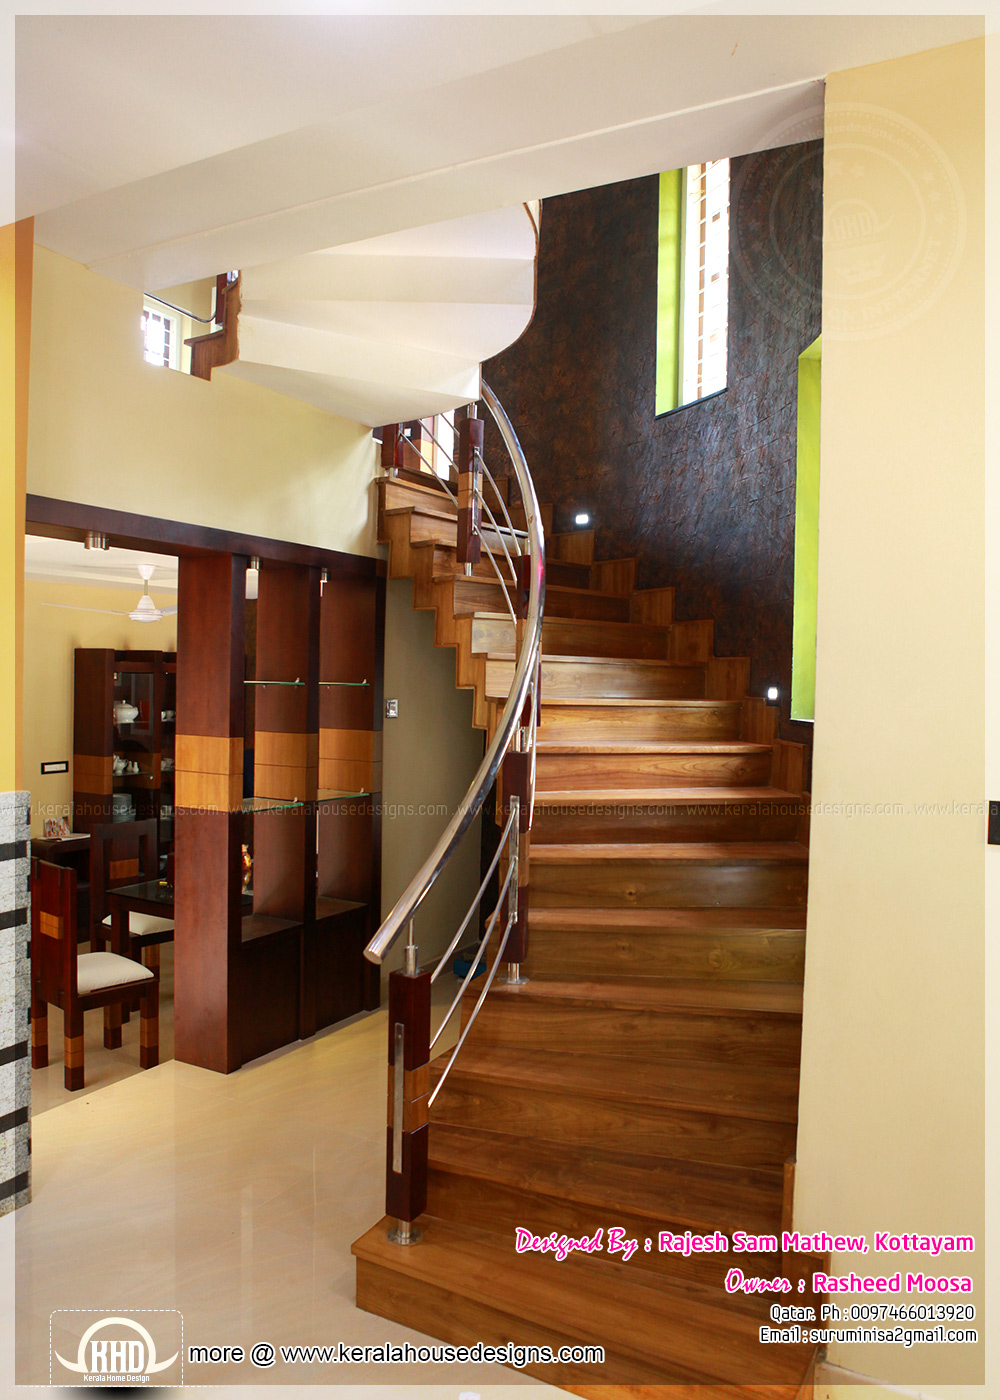 Wooden staircase Low cost interior design ideas india